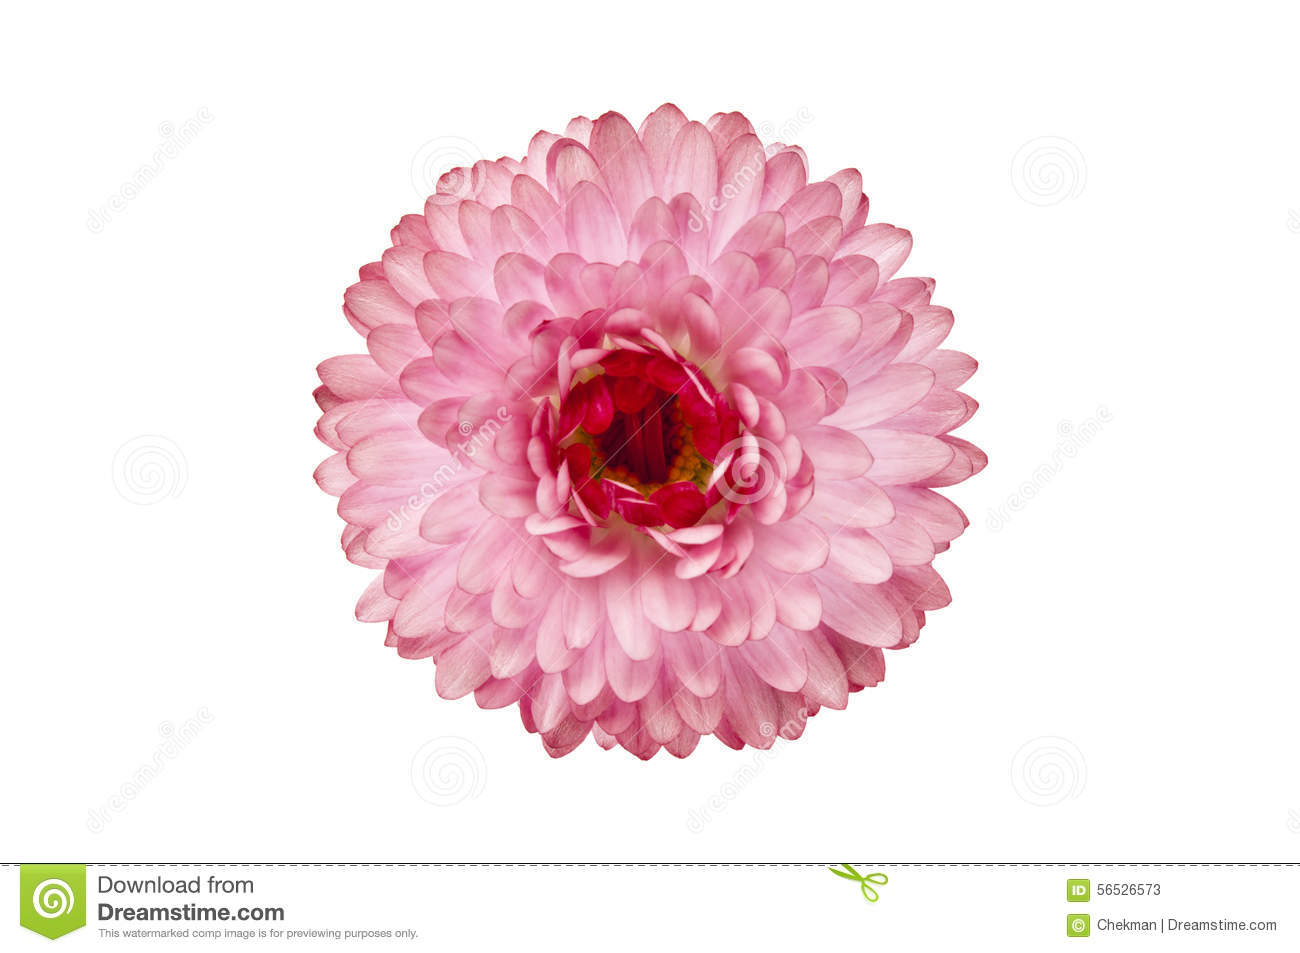 One flower on white background stock image image of growth flower beautiful pink flower one pink flower isolated on white background mightylinksfo